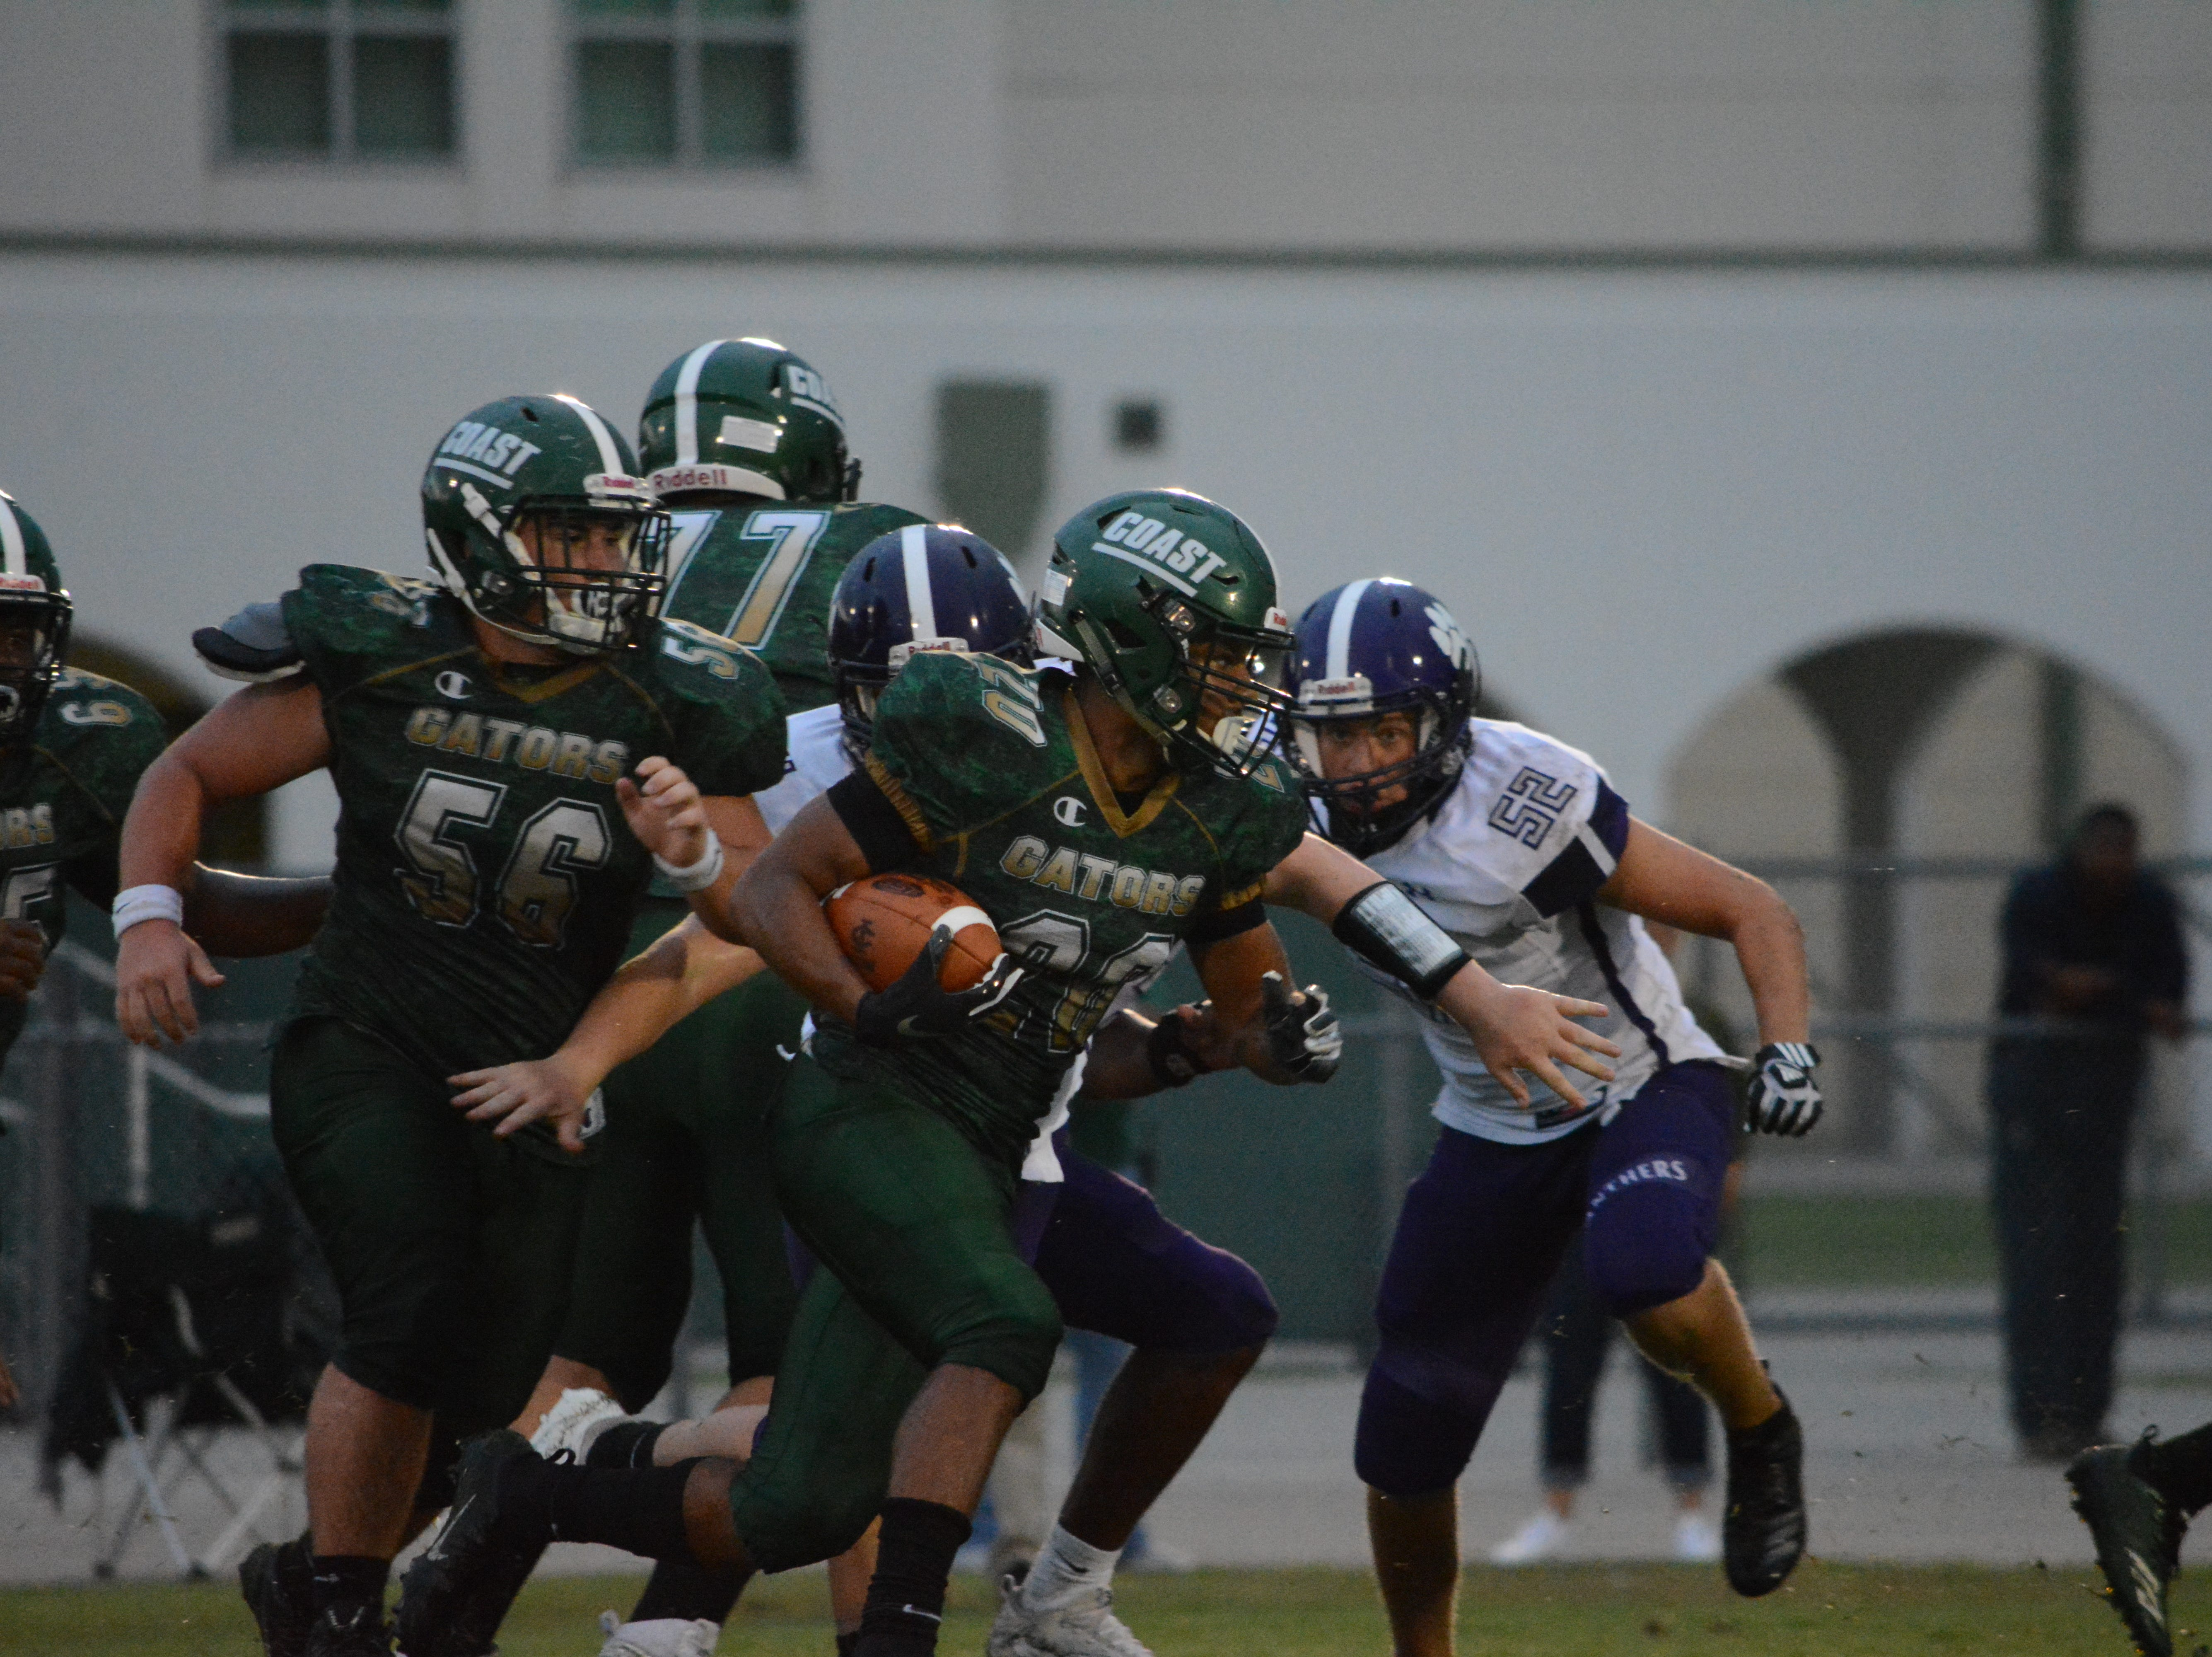 Due to bad weather on Friday, Cypress Lake played a rare Monday night game at Island Coast. The Panthers won 54-14.